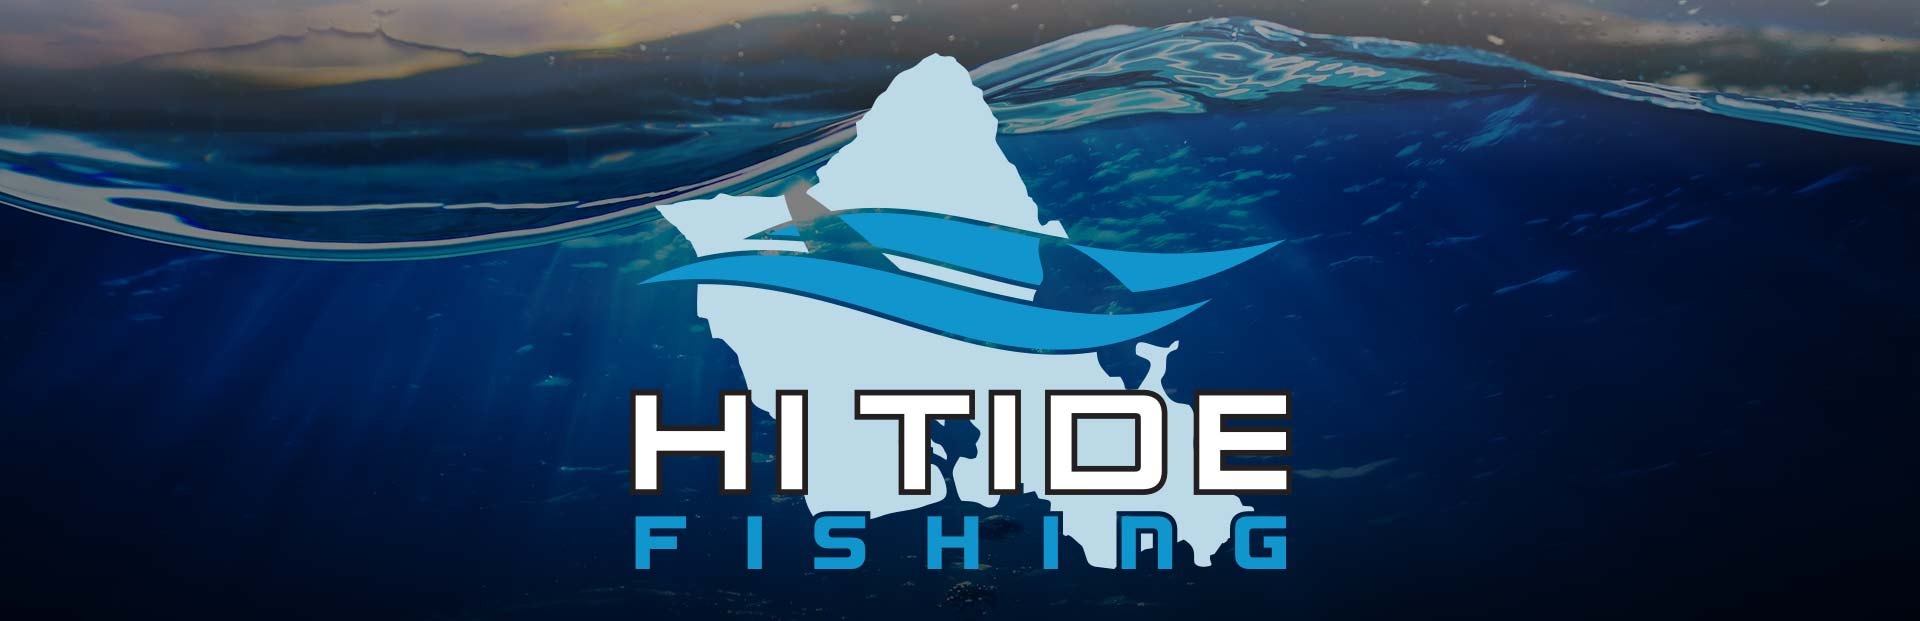 HI Tide Fishing Downloads